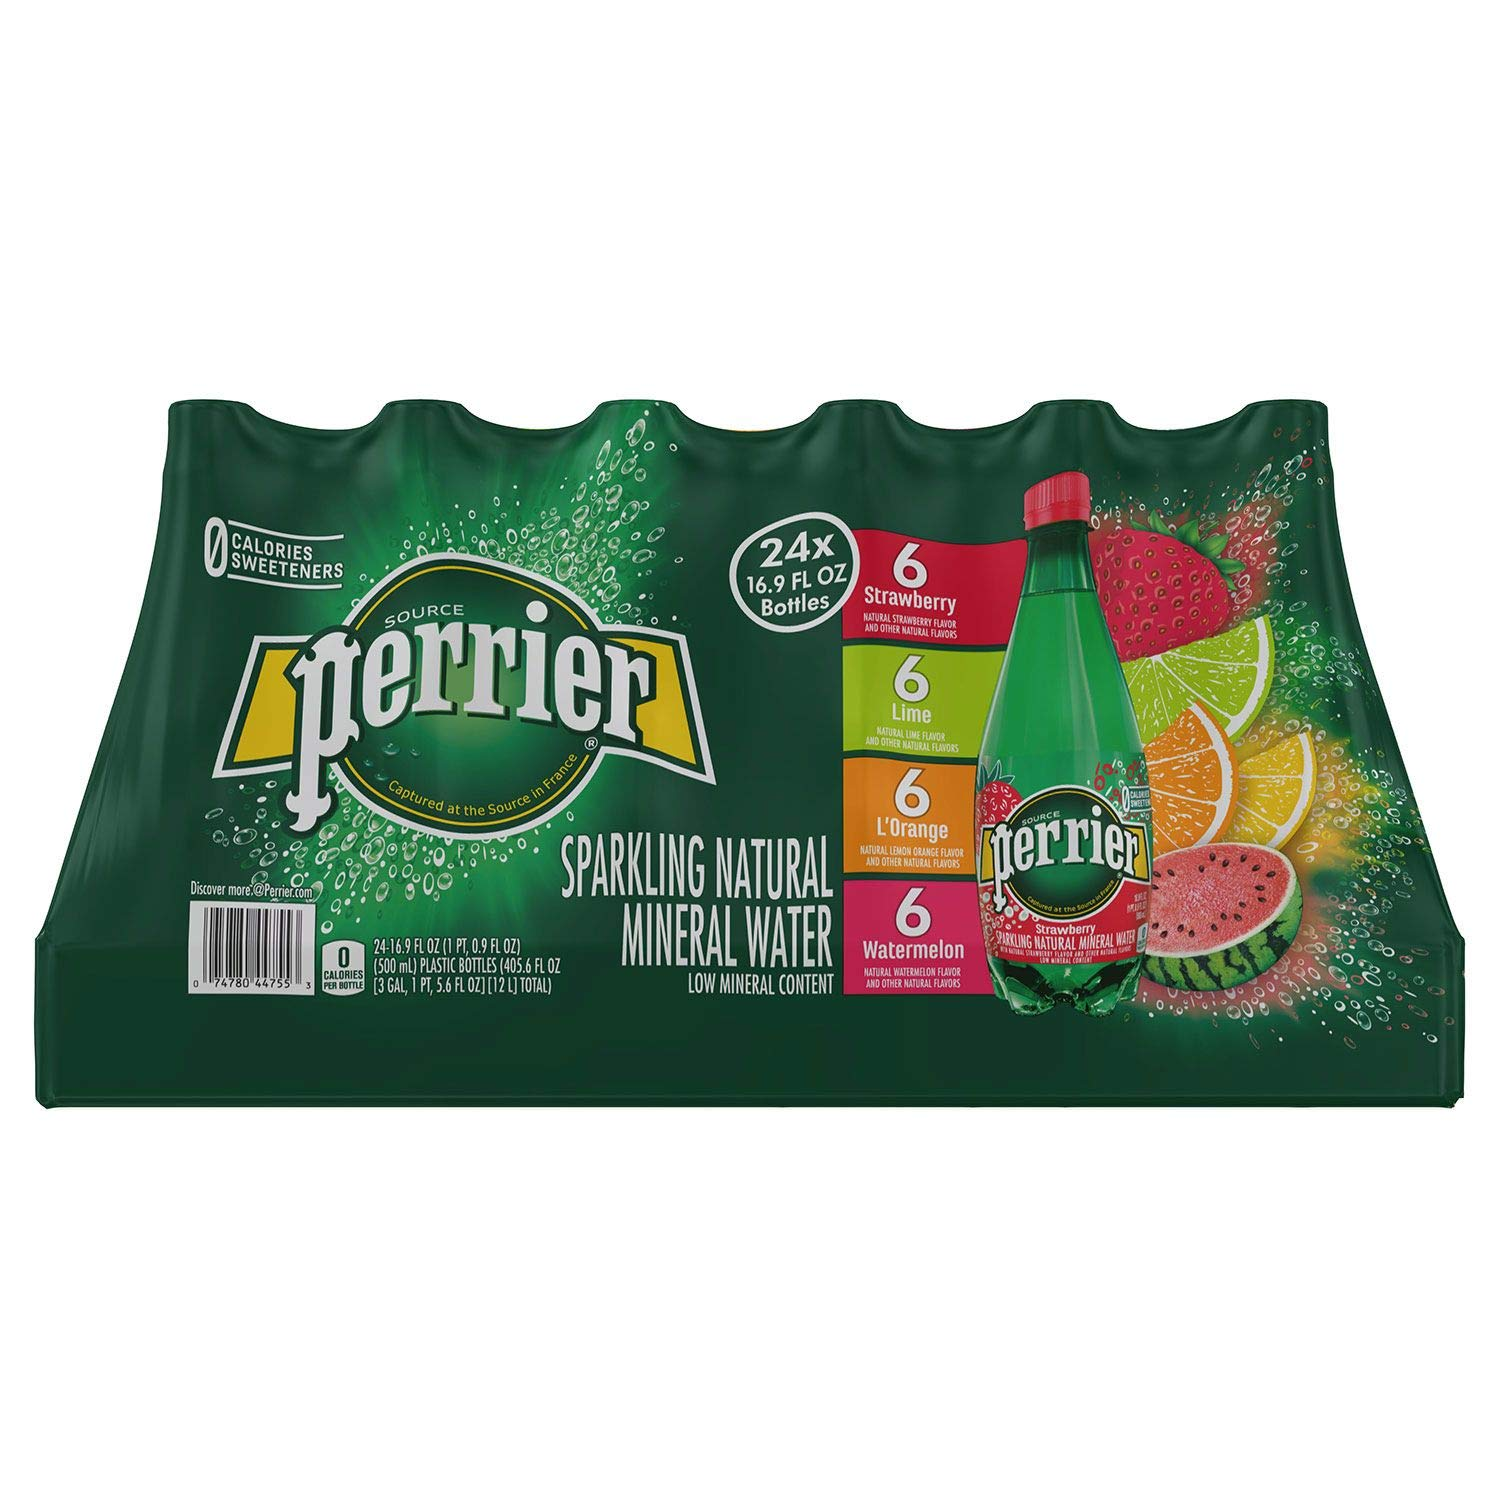 Perrier Sparkling Natural Mineral Water, (Assorted Flavors, 16.9 Fl. Oz (Pack of 24)) by Perrier